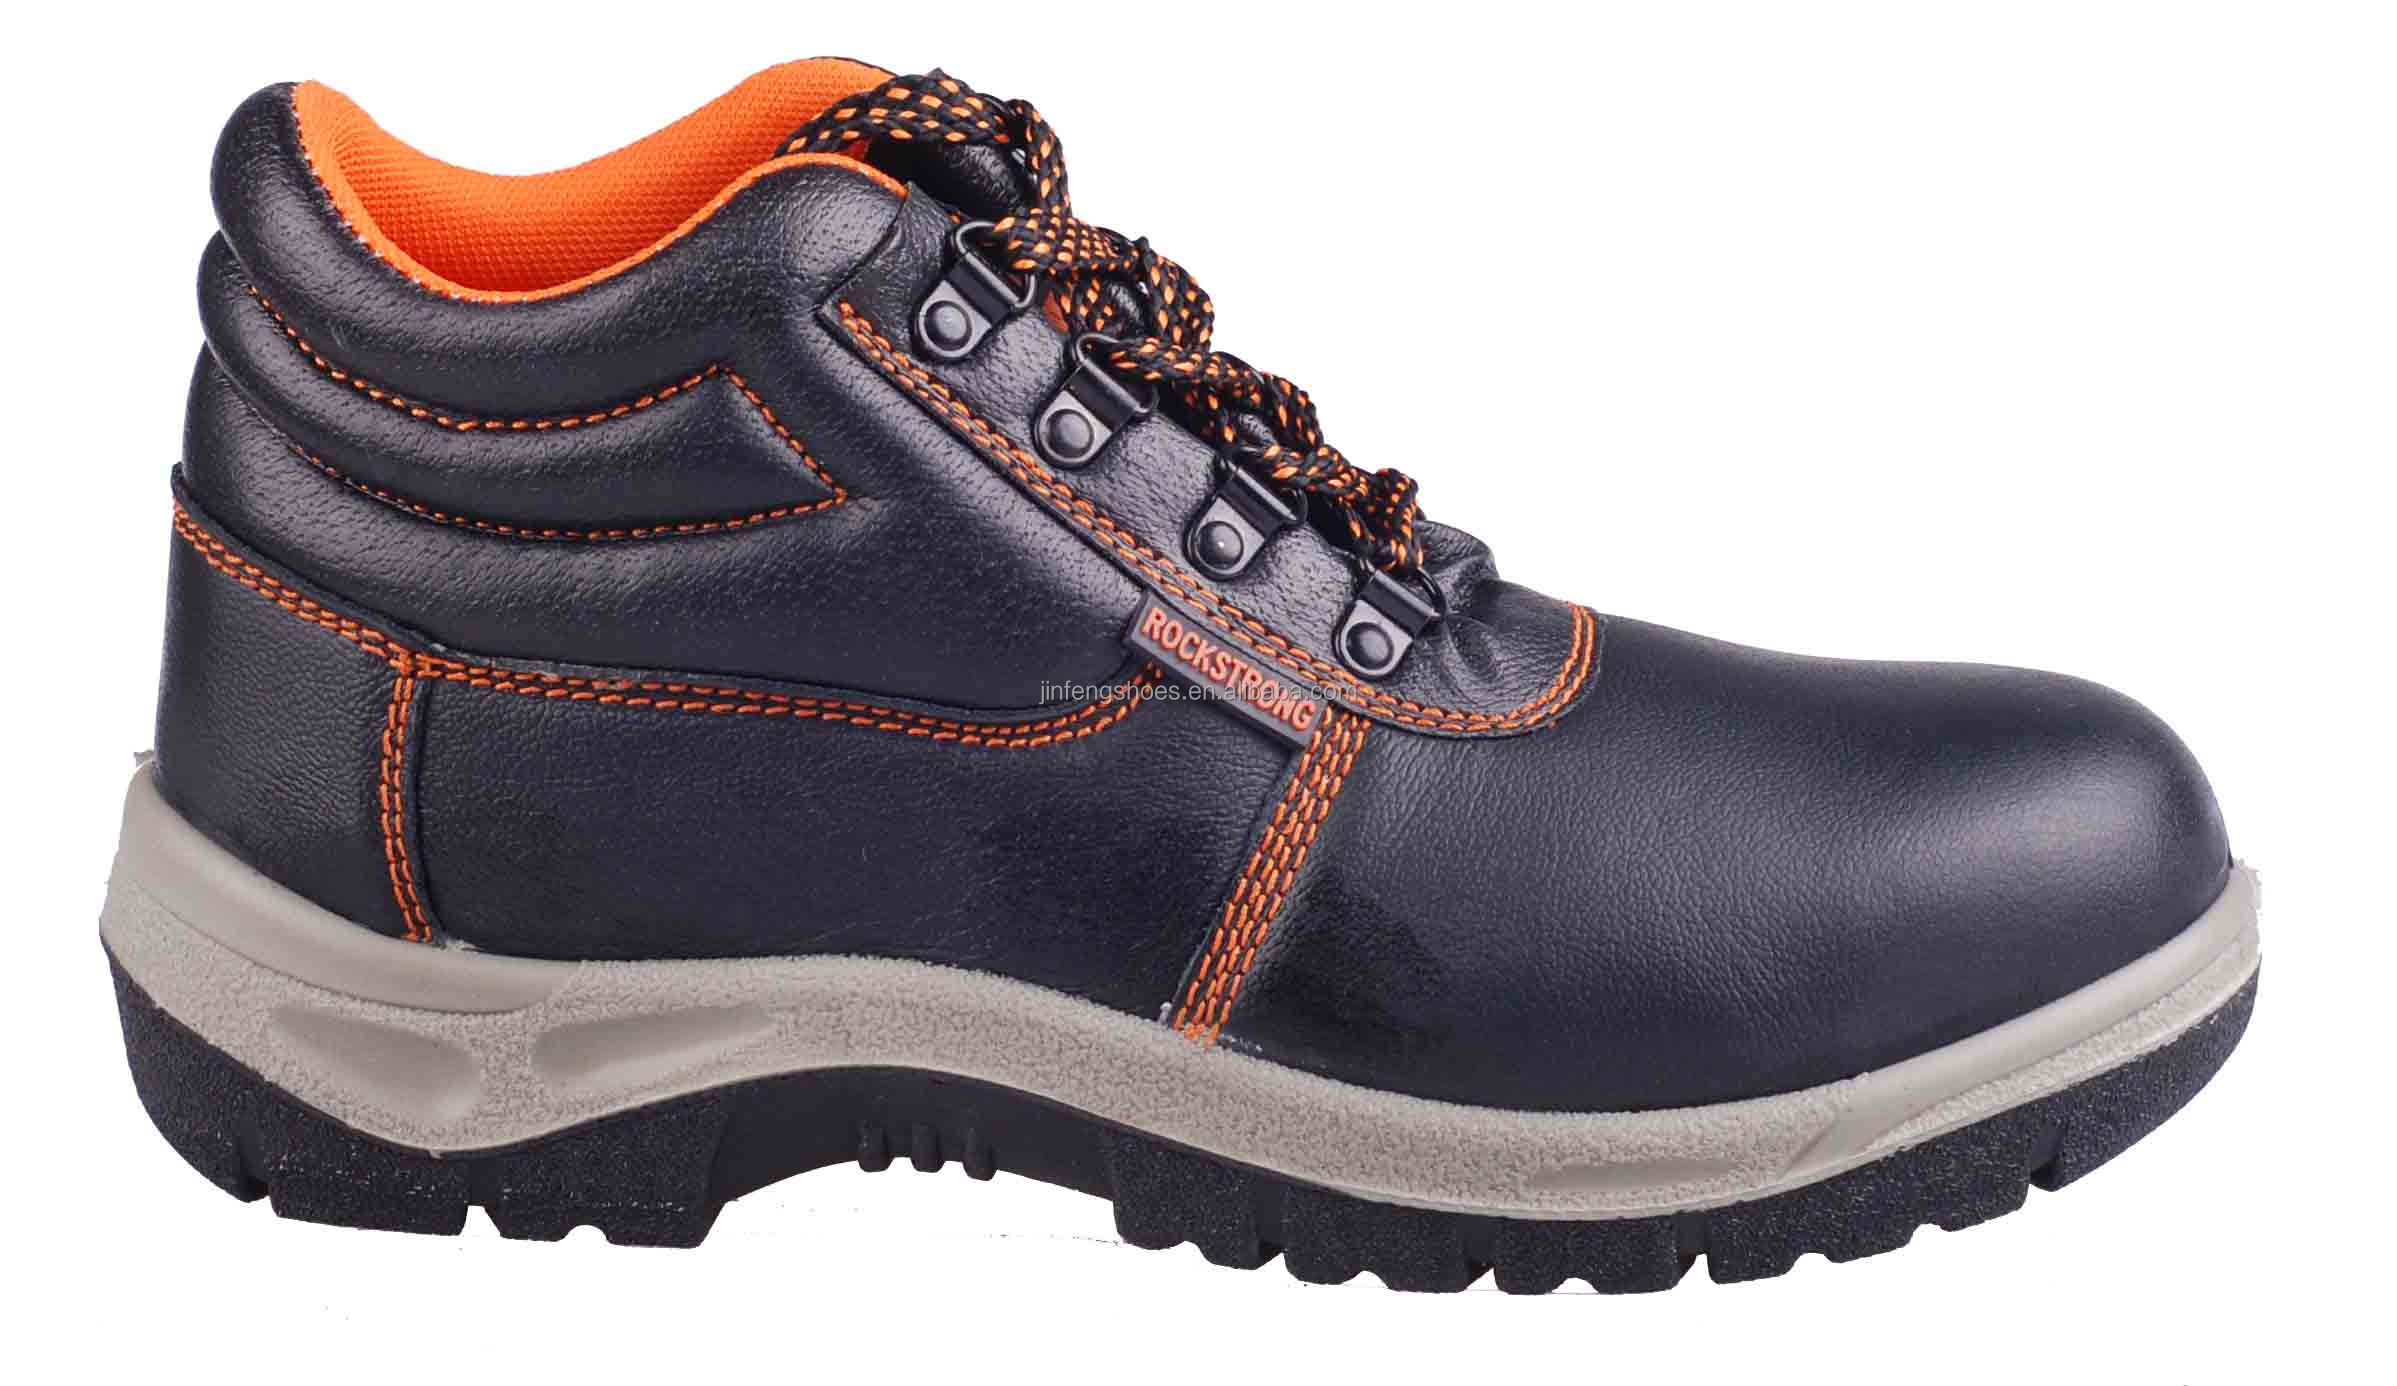 Cheap Safety Work Shoes Hard Work Boots - Buy Safety Work Shoes ...